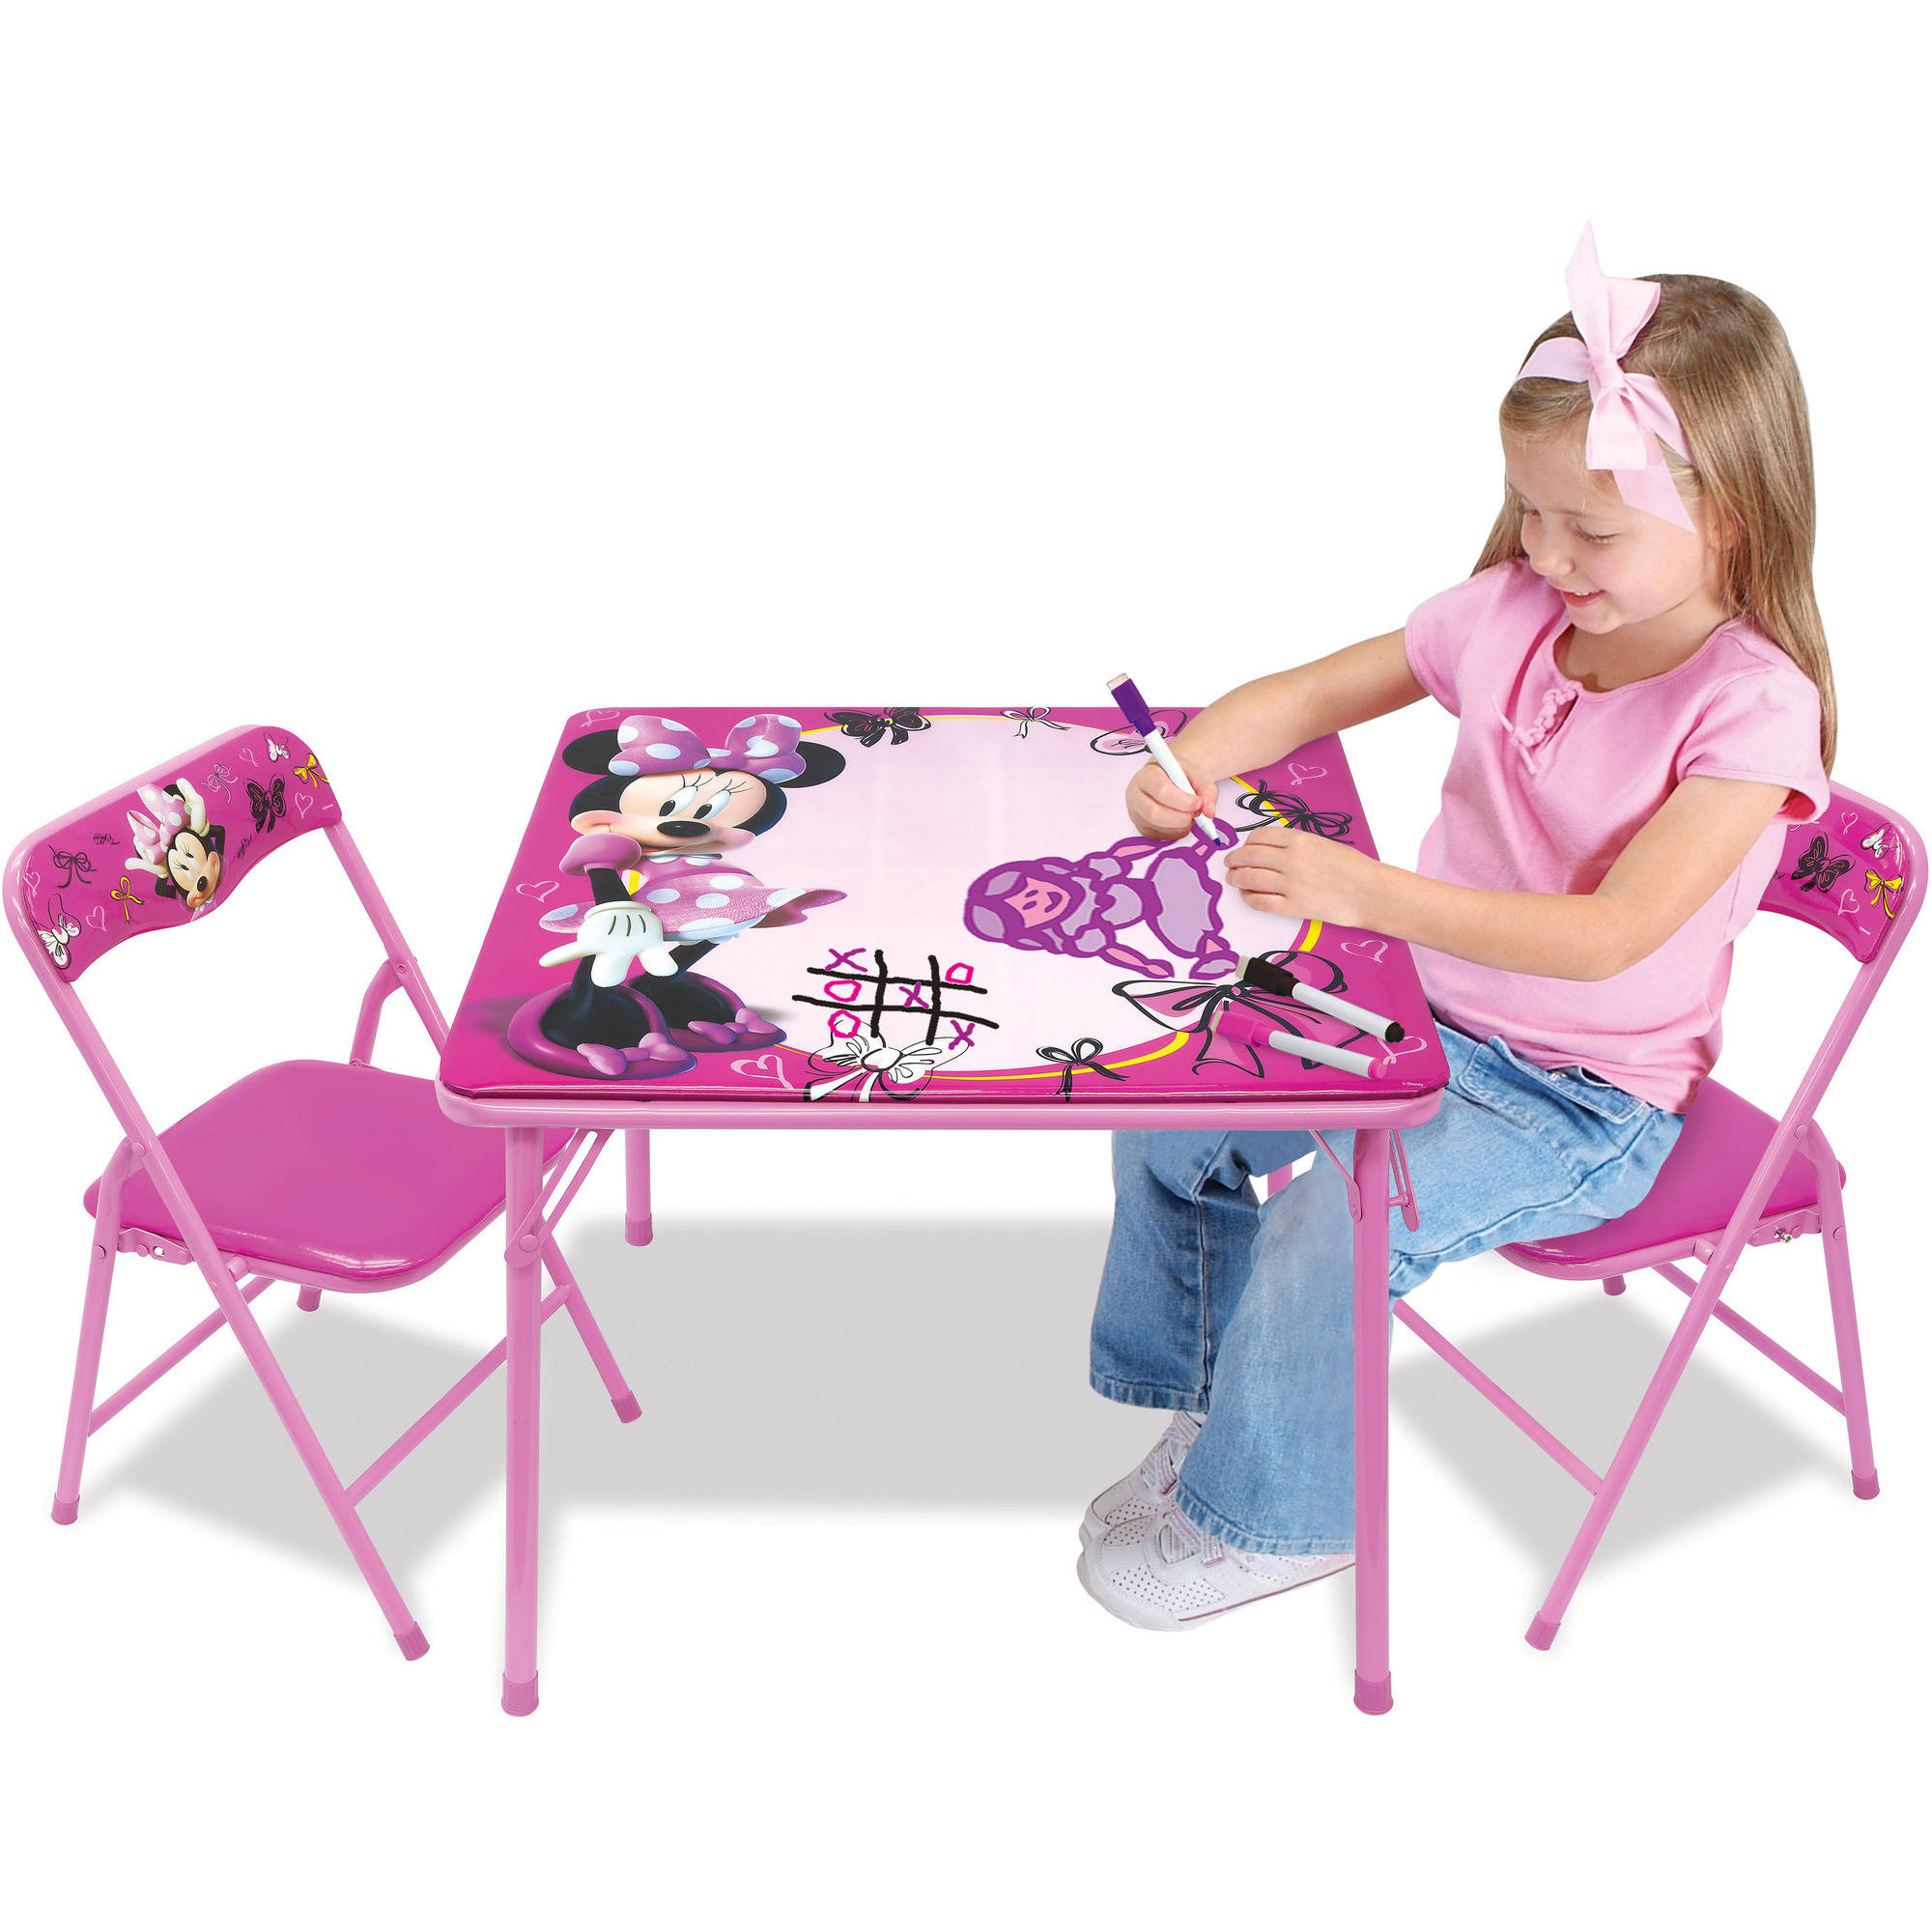 Disney Minnie Mouse Erasable Activity Table Set with Markers - Walmart.com  sc 1 st  Walmart & Disney Minnie Mouse Erasable Activity Table Set with Markers ...